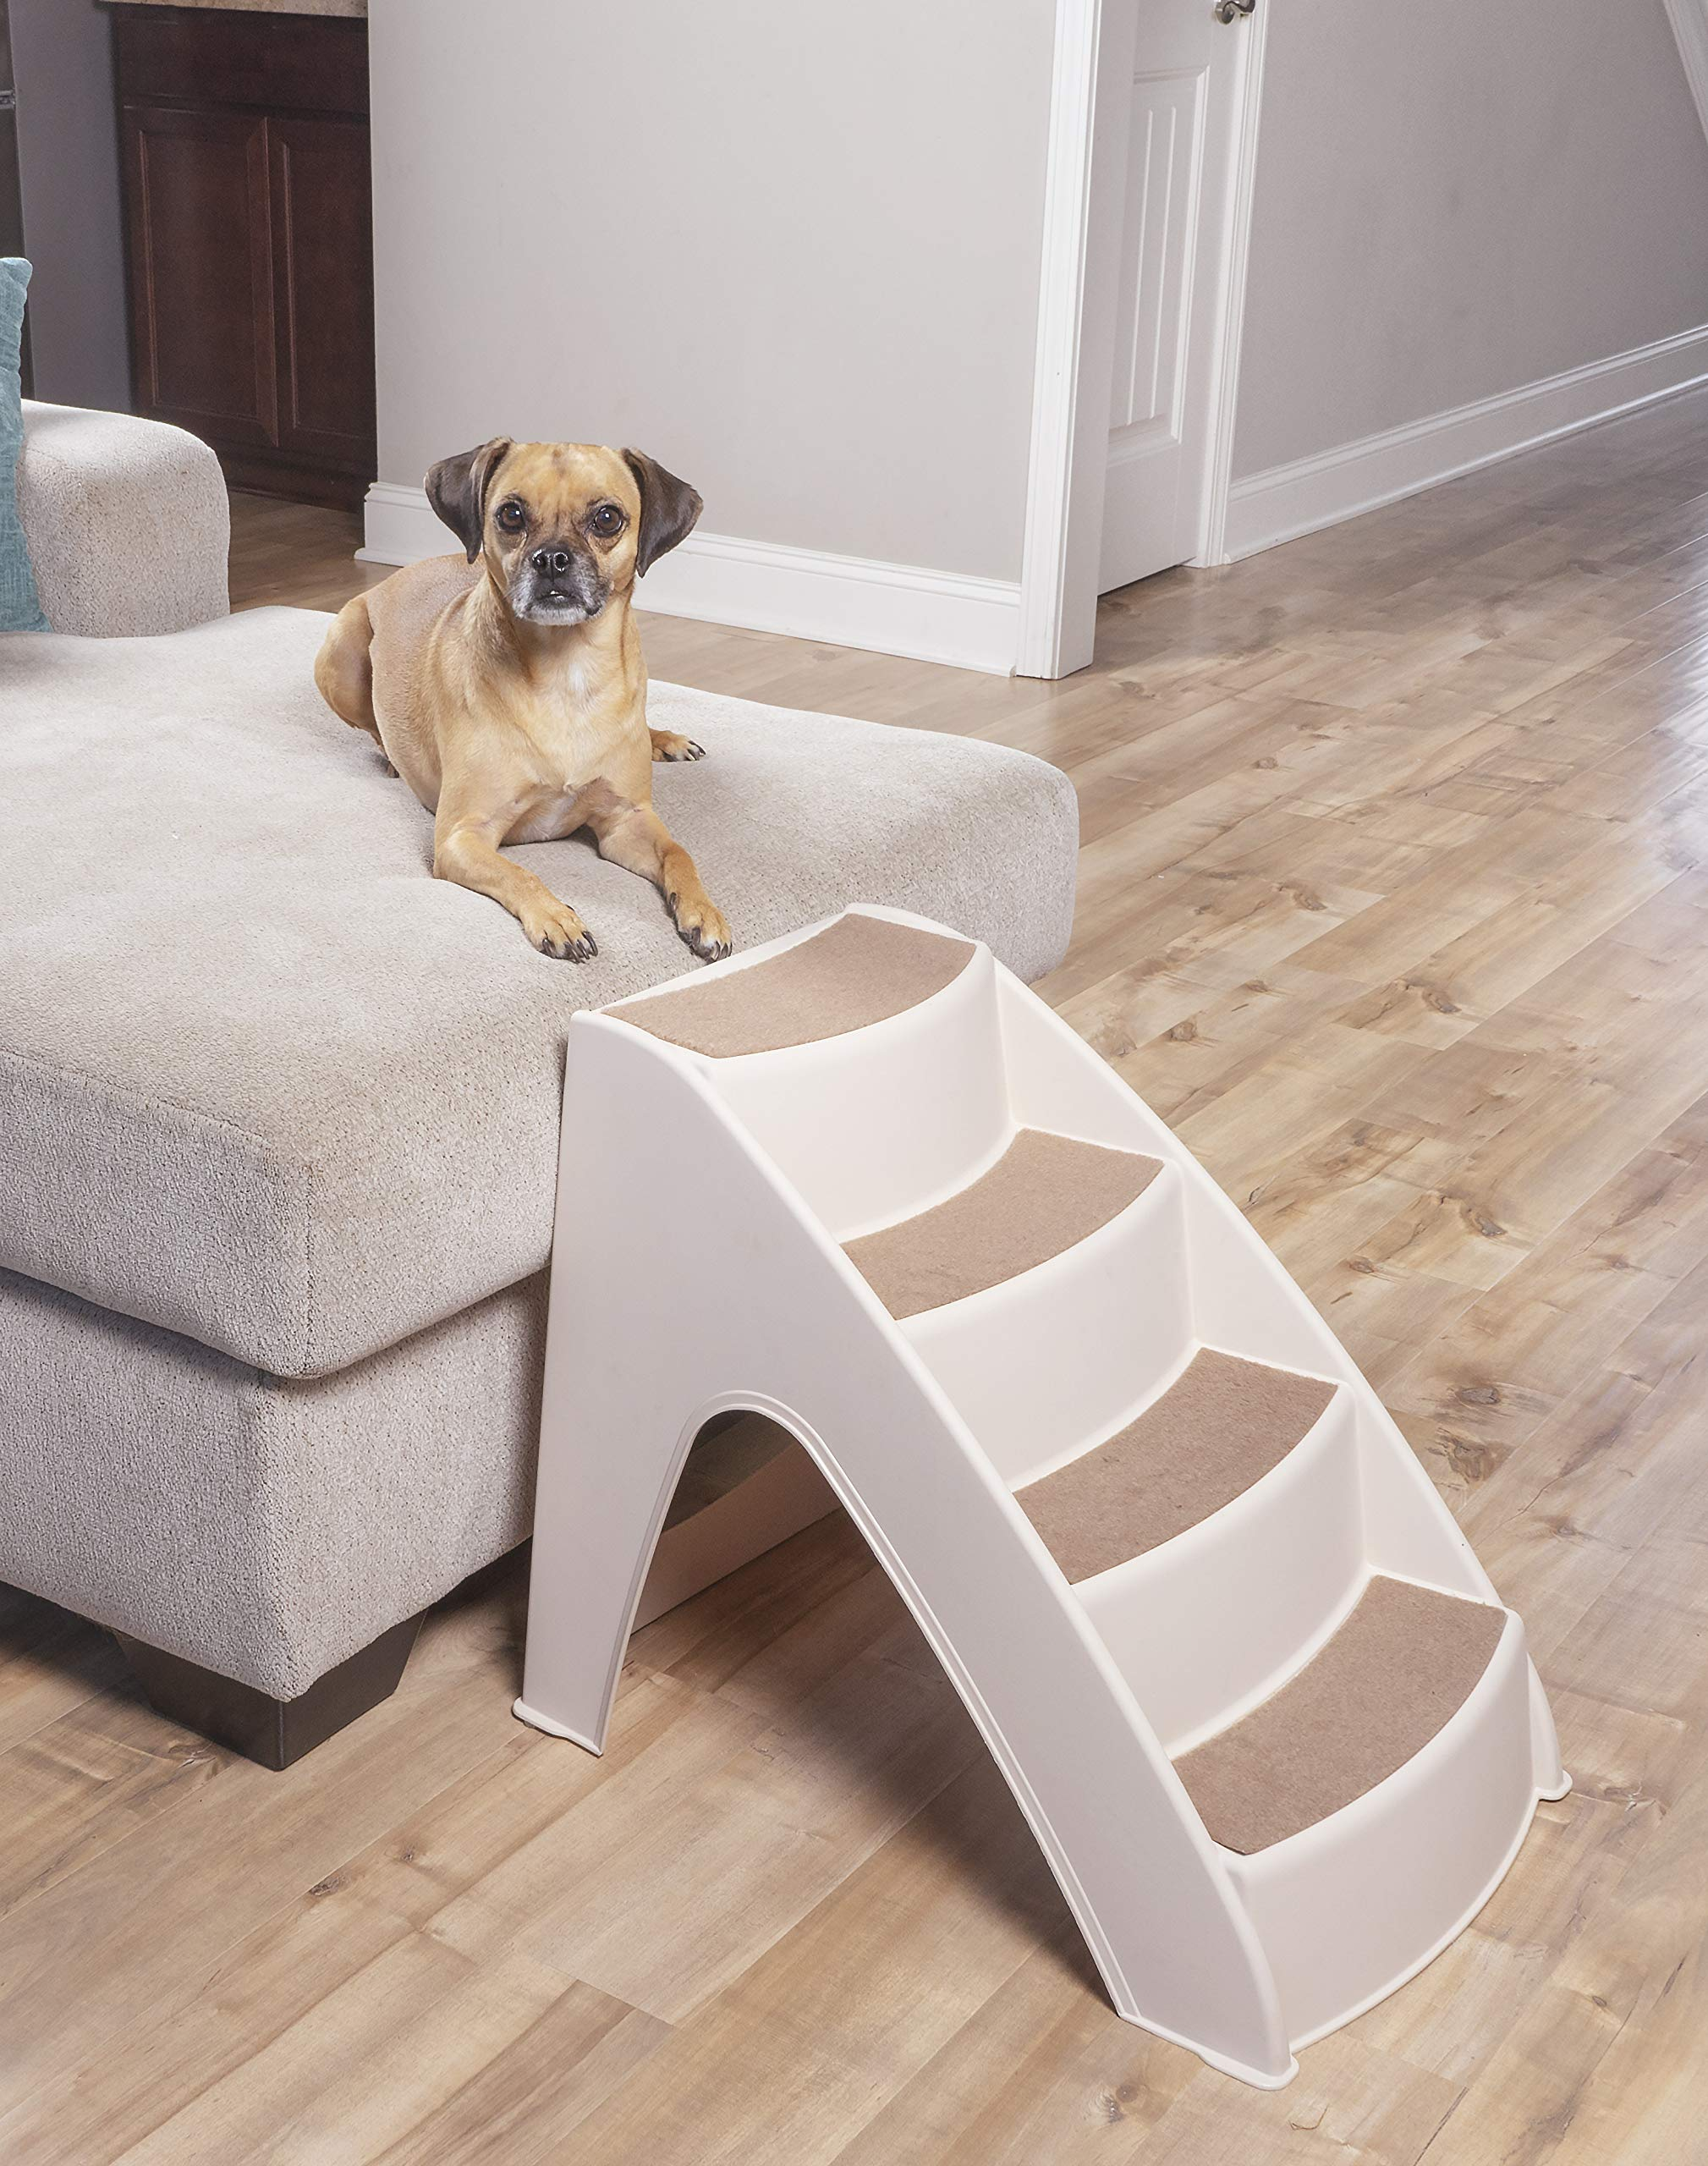 PetSafe Solvit PupSTEP Lite Pet Stairs, Steps for Dogs and Cats, Best for Small to Medium Pets, Non-Fold Design by PetSafe